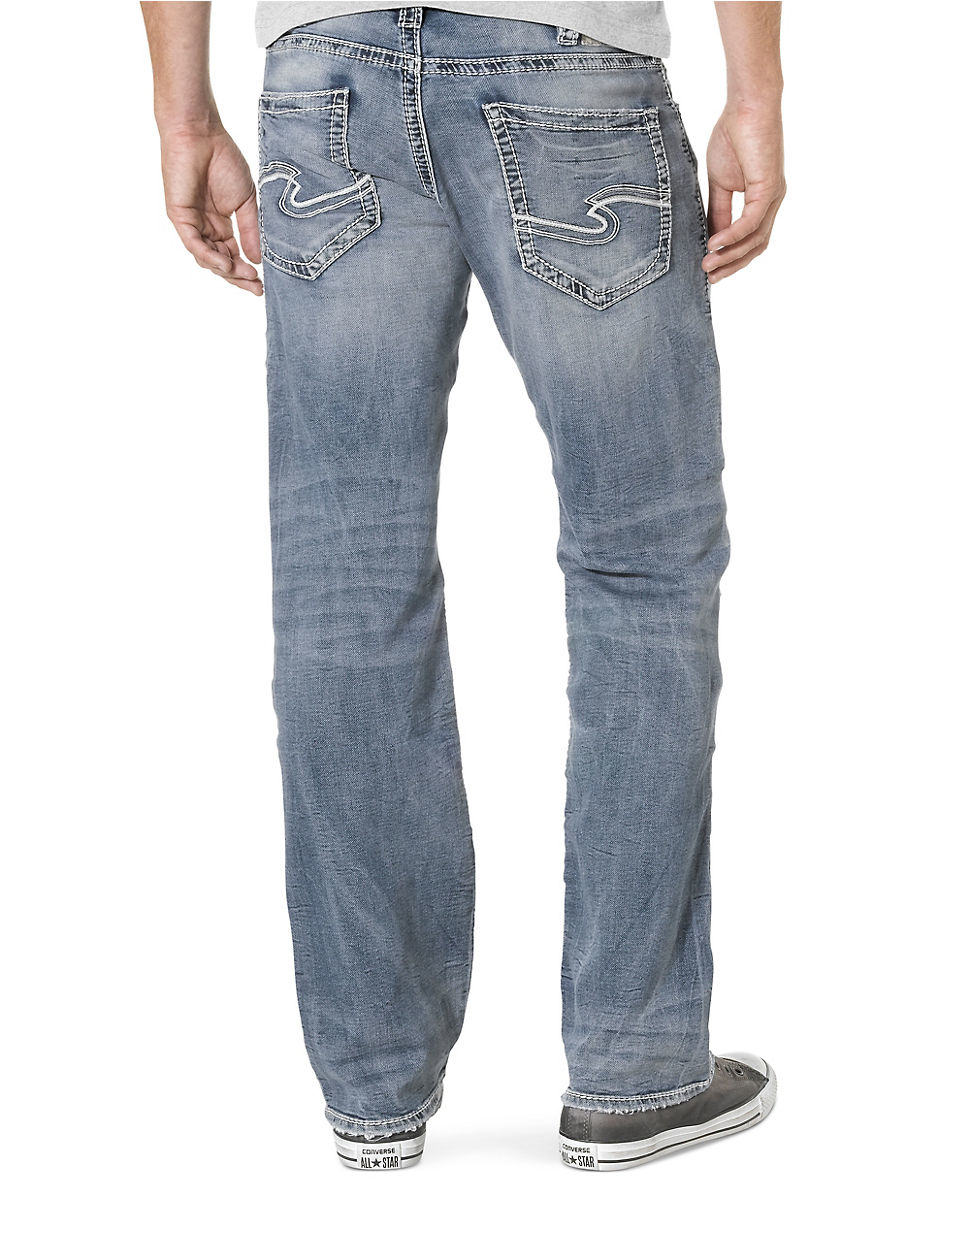 Shop the Latest Collection of Silver Jeans Co. Jeans for Men Online at metrnight.gq FREE SHIPPING AVAILABLE!